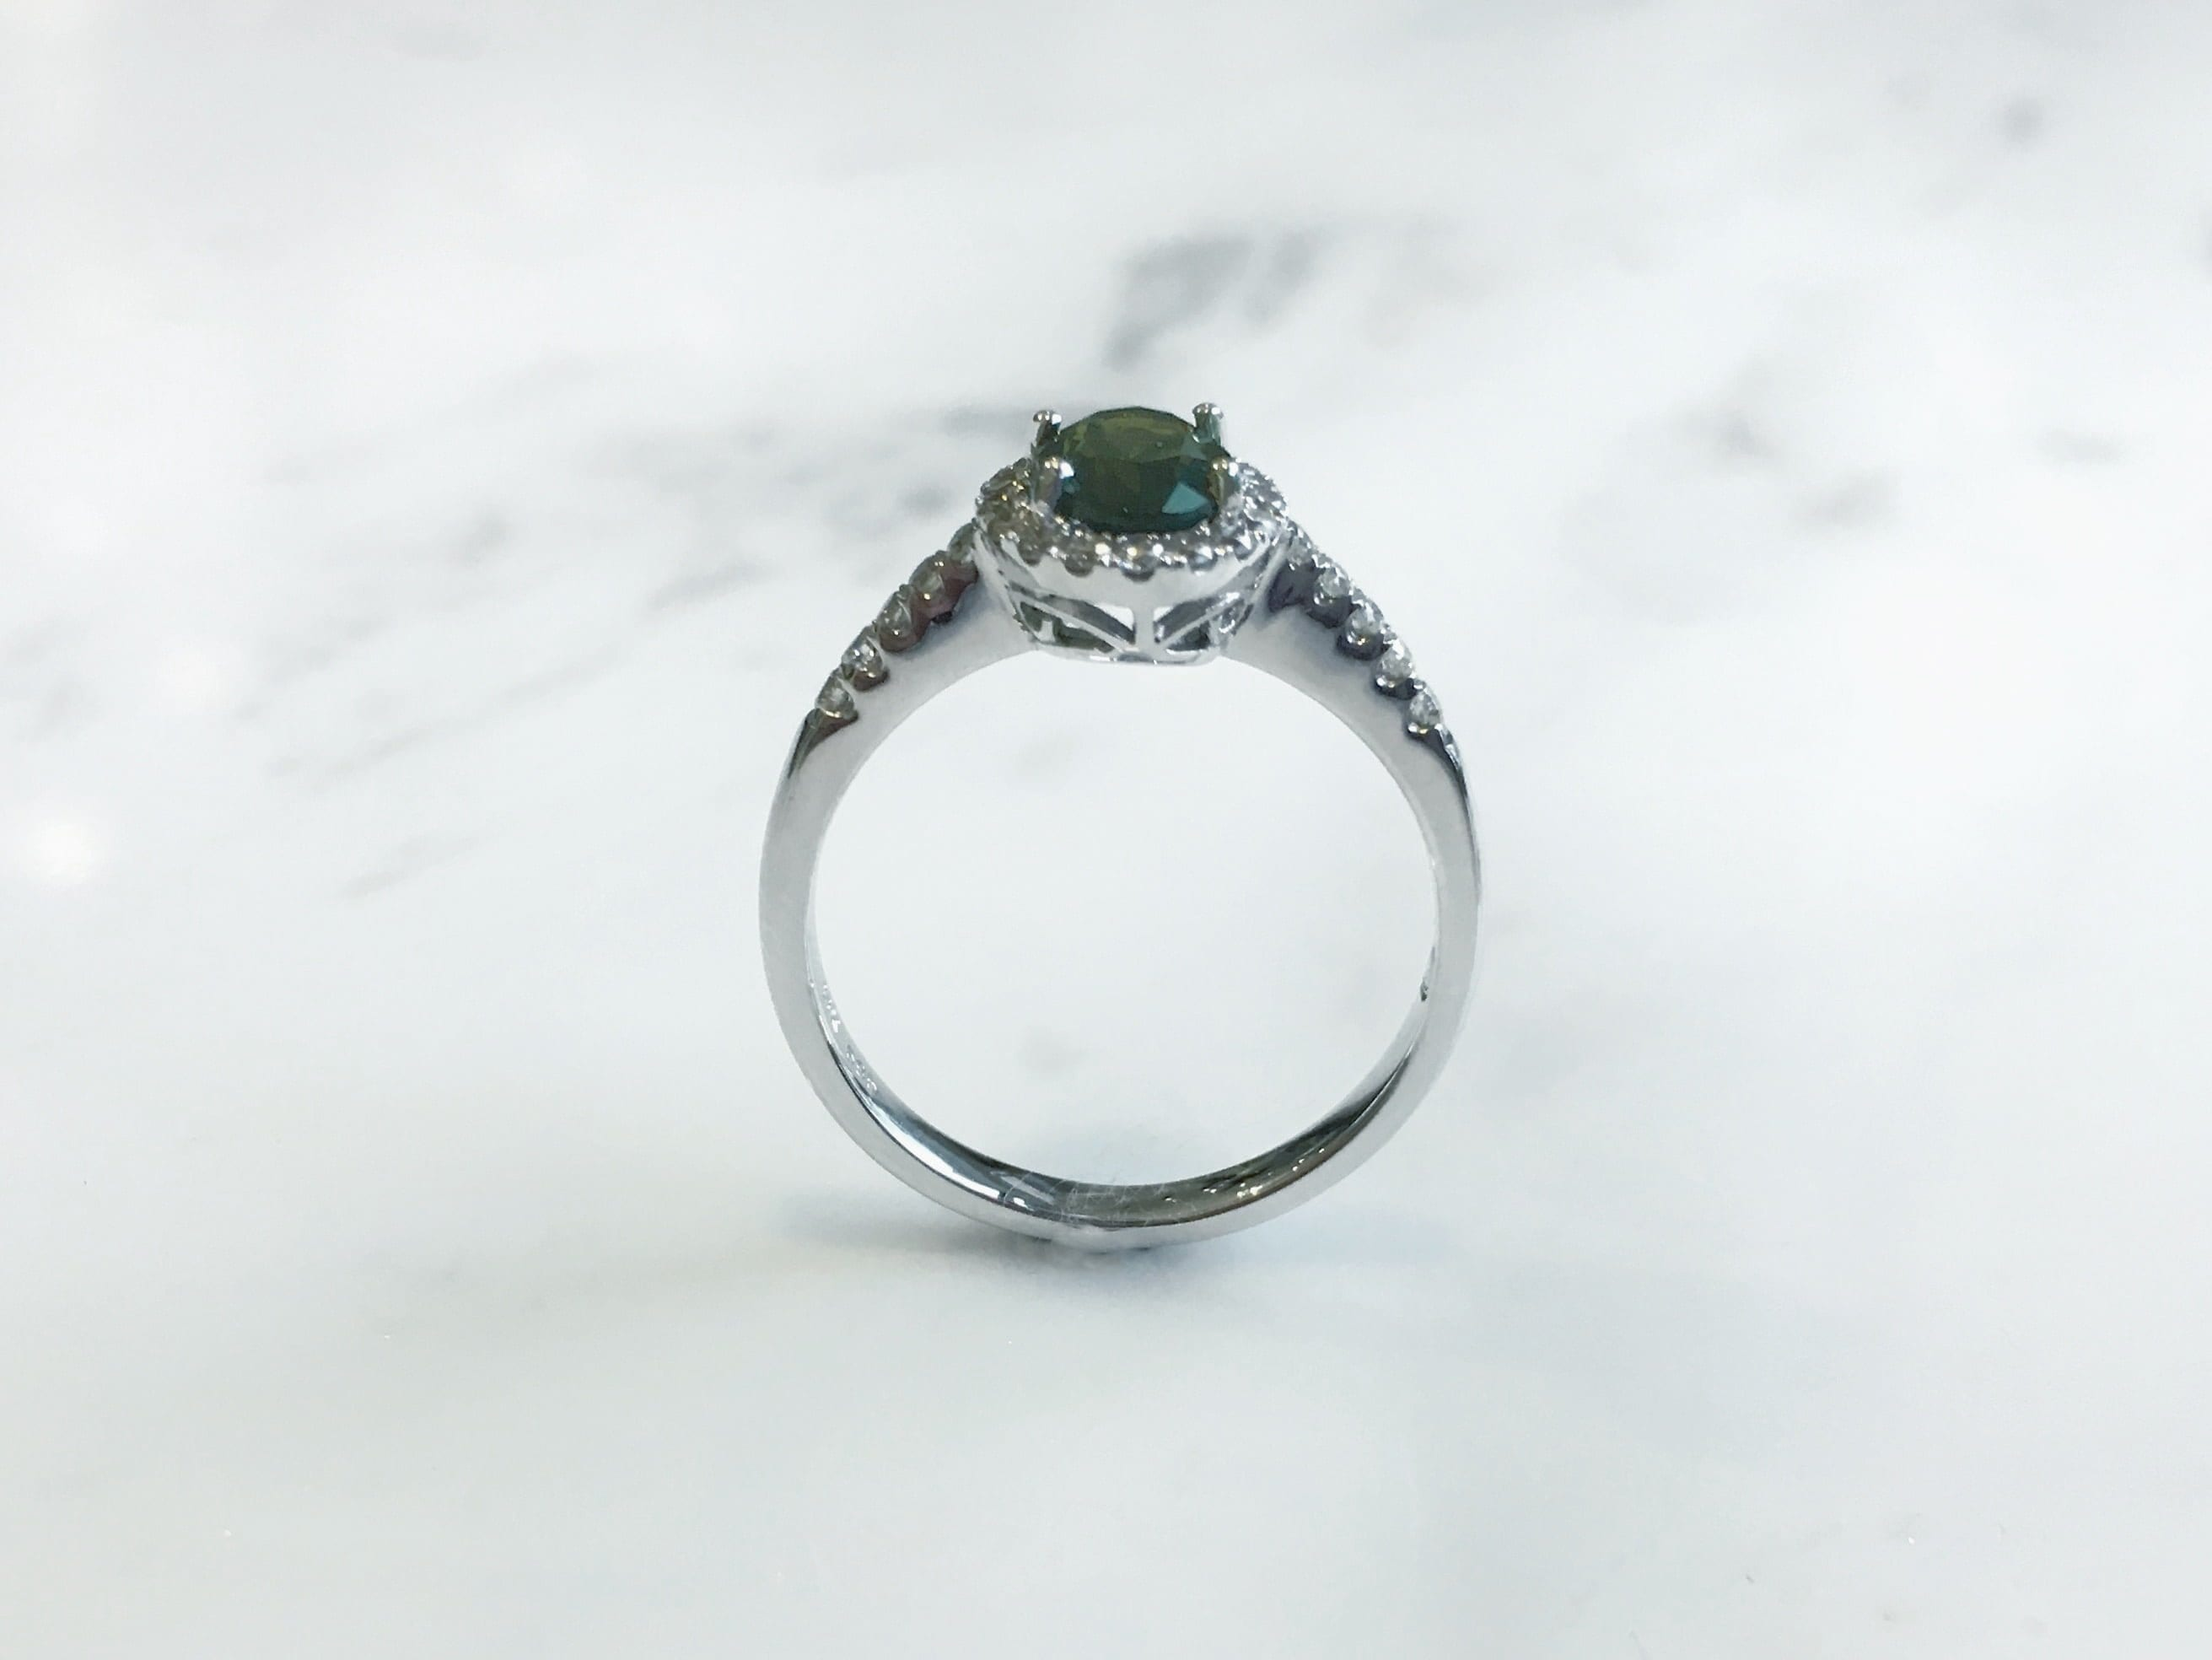 tourmaline in stamford id front diamond light natural at green for j rings gold ring good sale condition cocktail engagement oval l jewelry